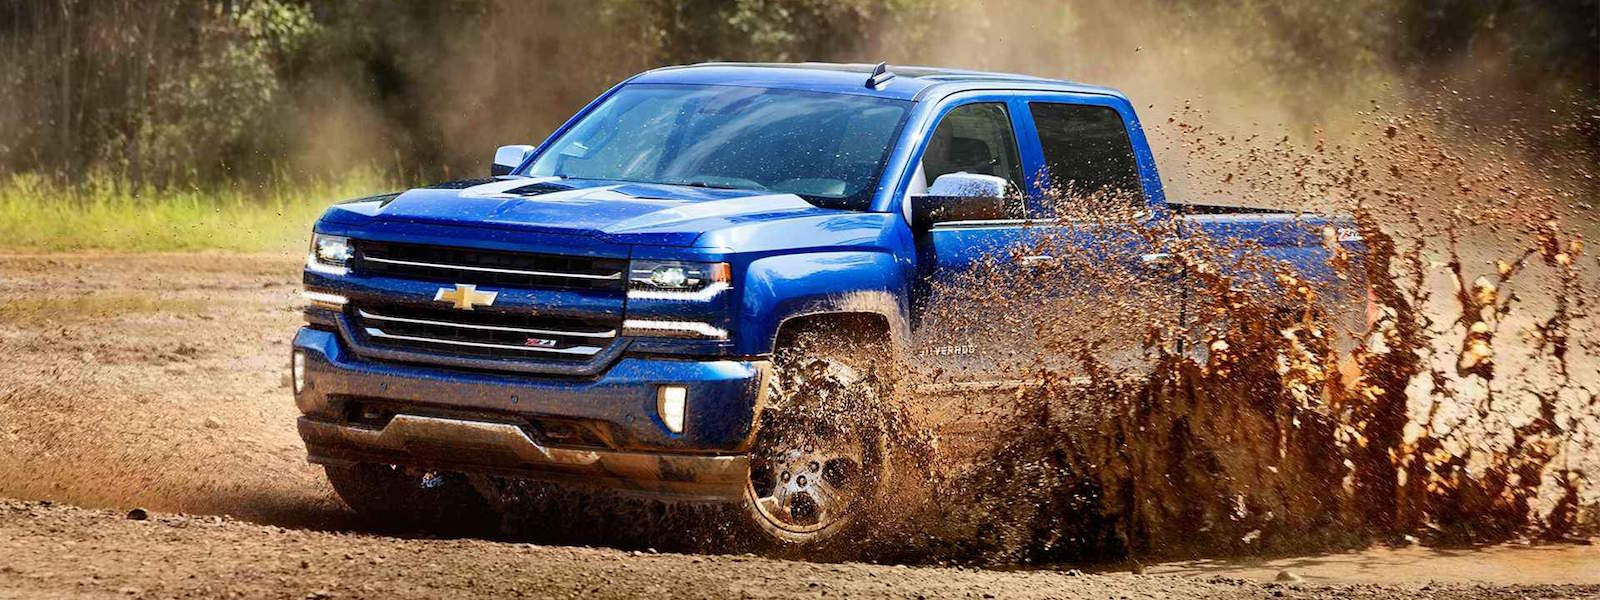 2017 Chevy Silverado Performance